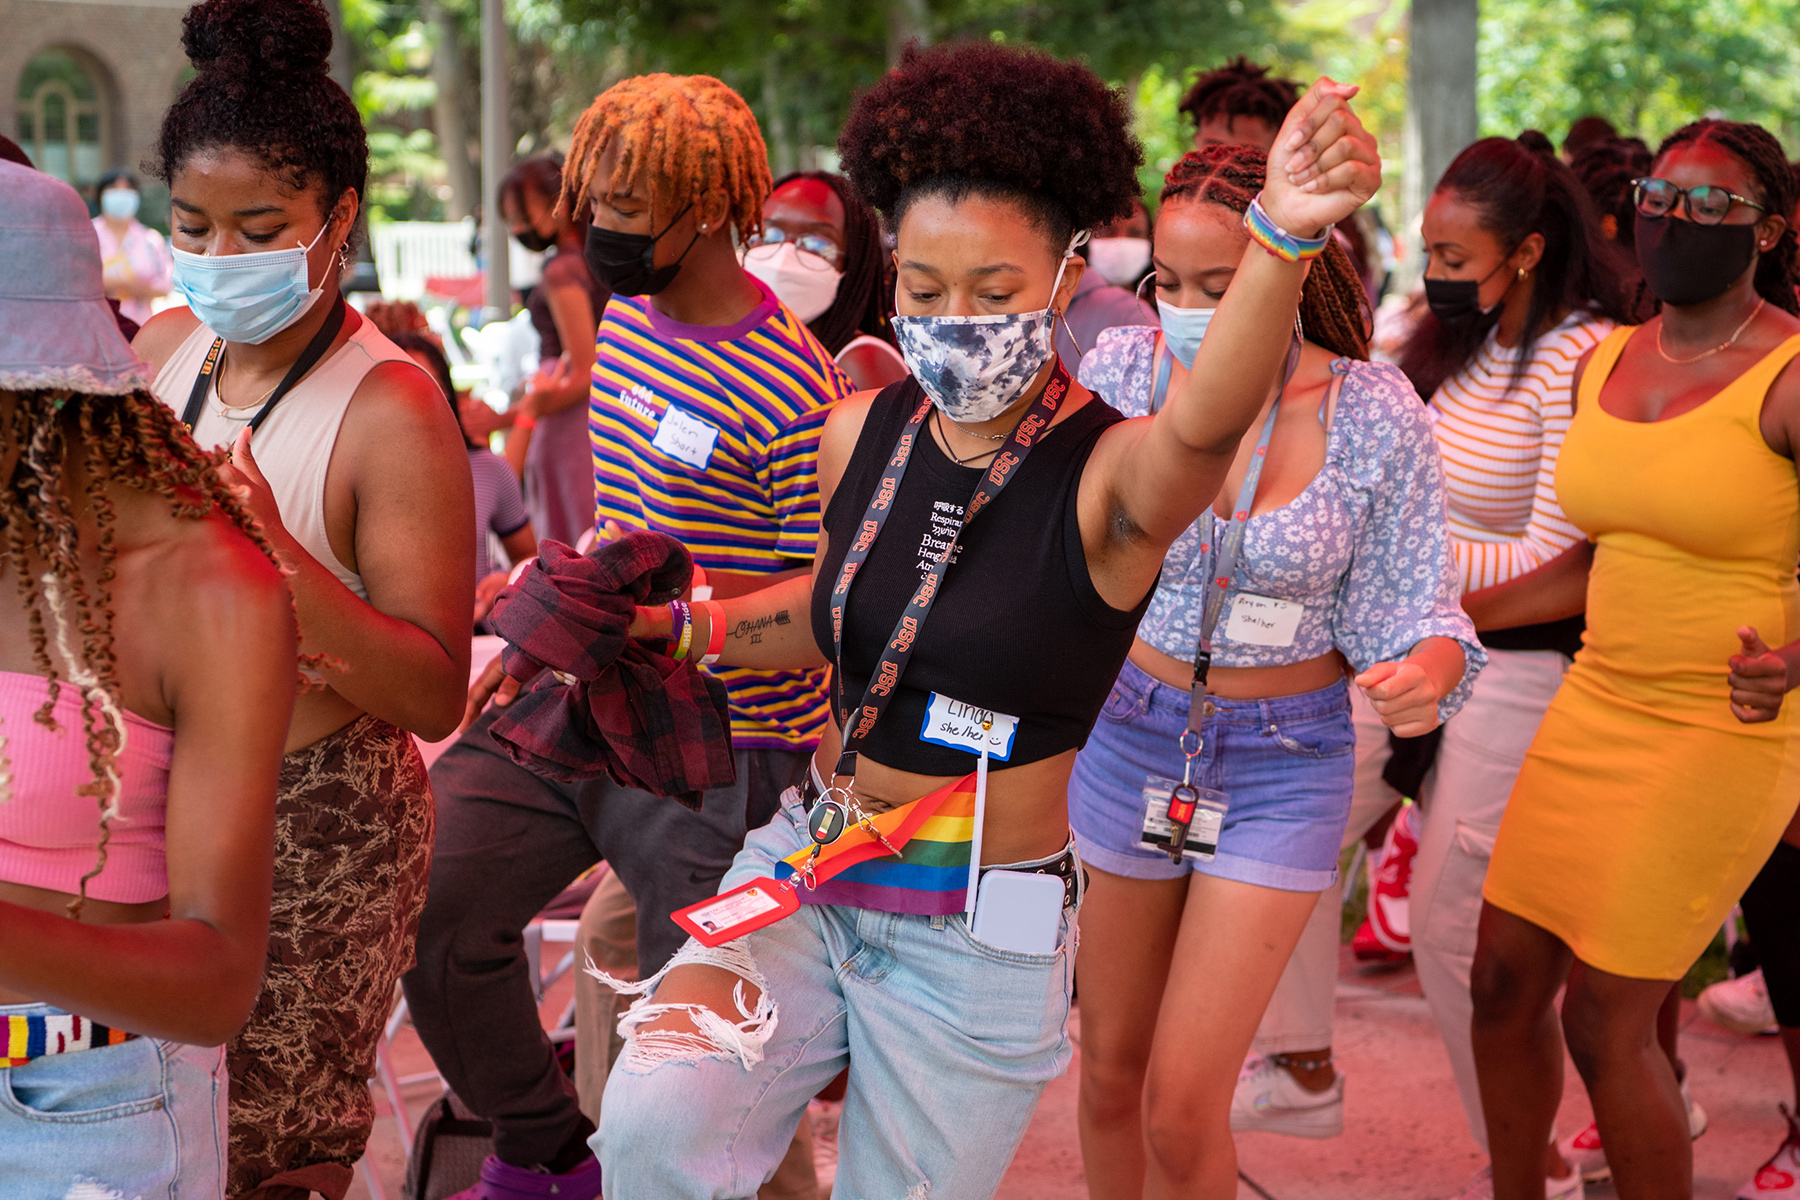 Students on dance floor: USC'sStudent Equity and Inclusion Programs